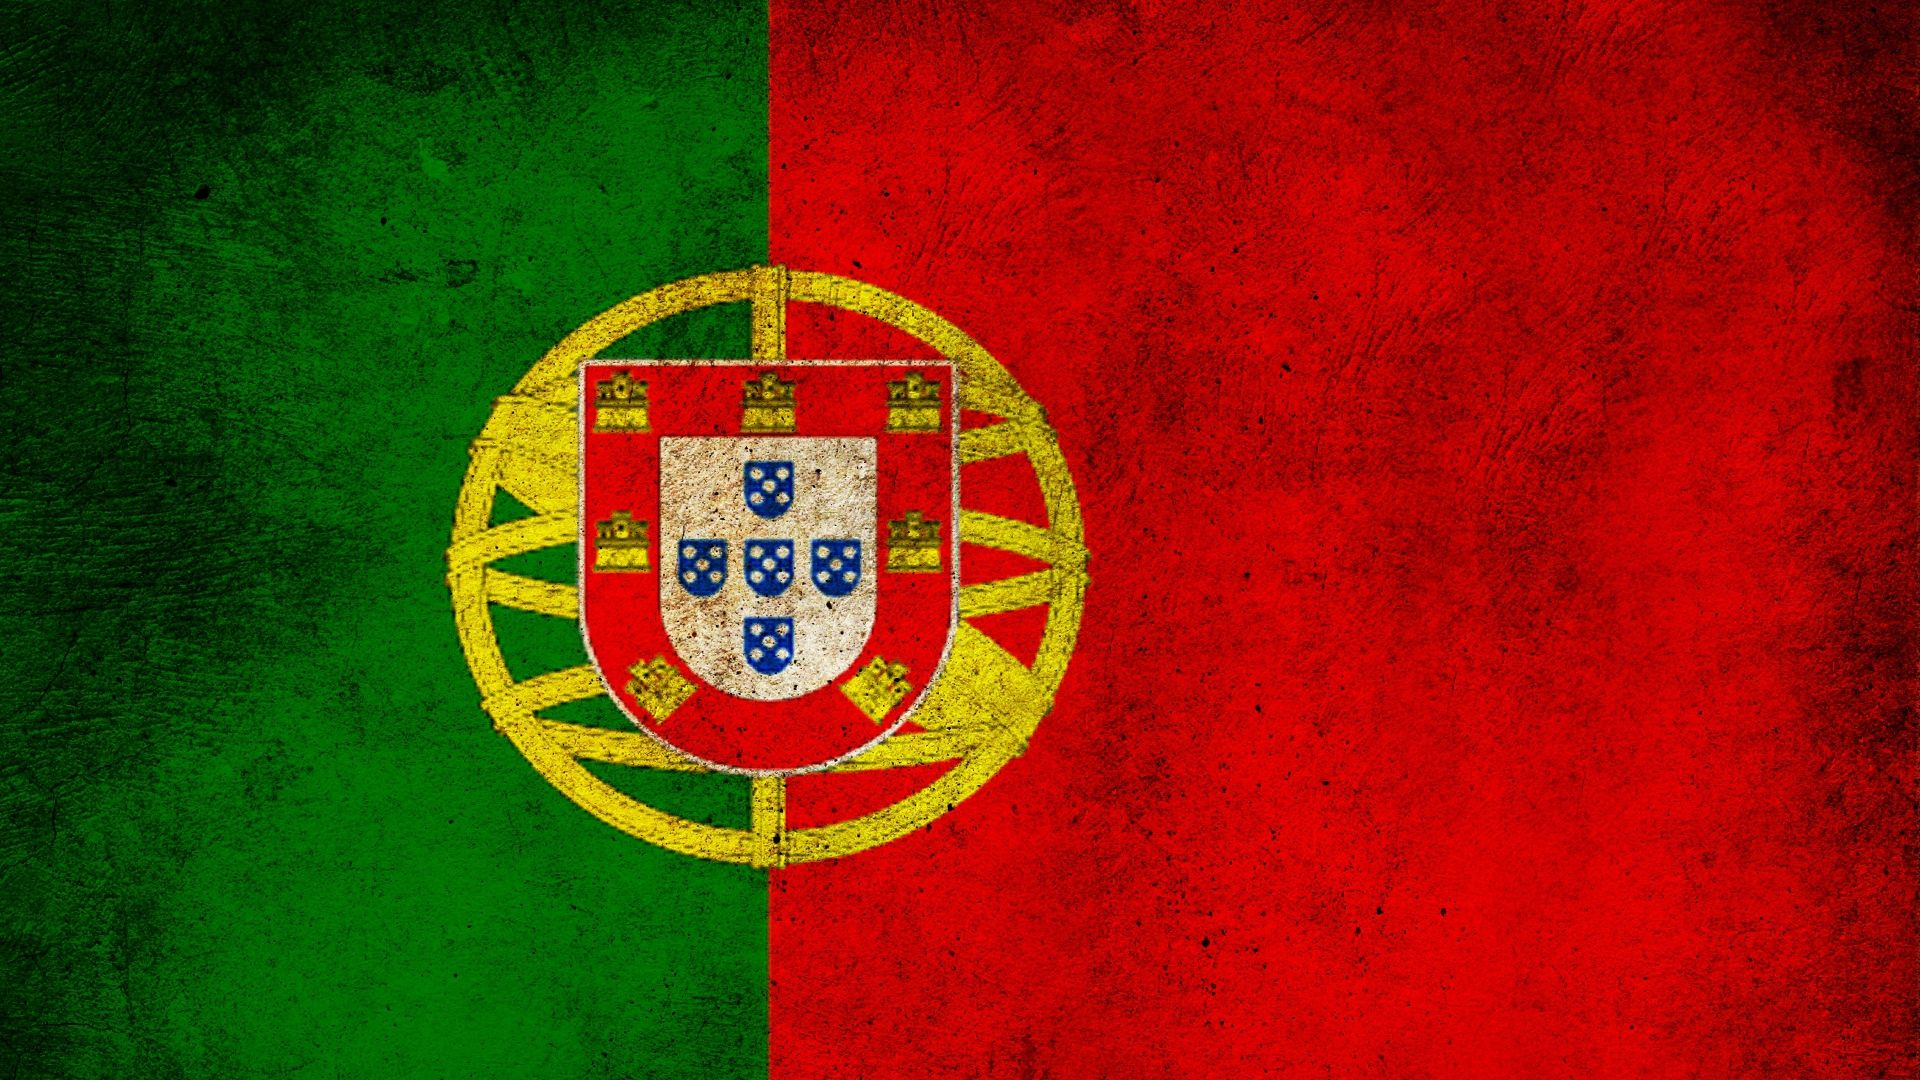 Download Wallpaper 1920x1080 Portugal Flag Stripes Colors Dirt Full Hd 1080p Hd Background Portugal Flag Flag Painting Portuguese Flag